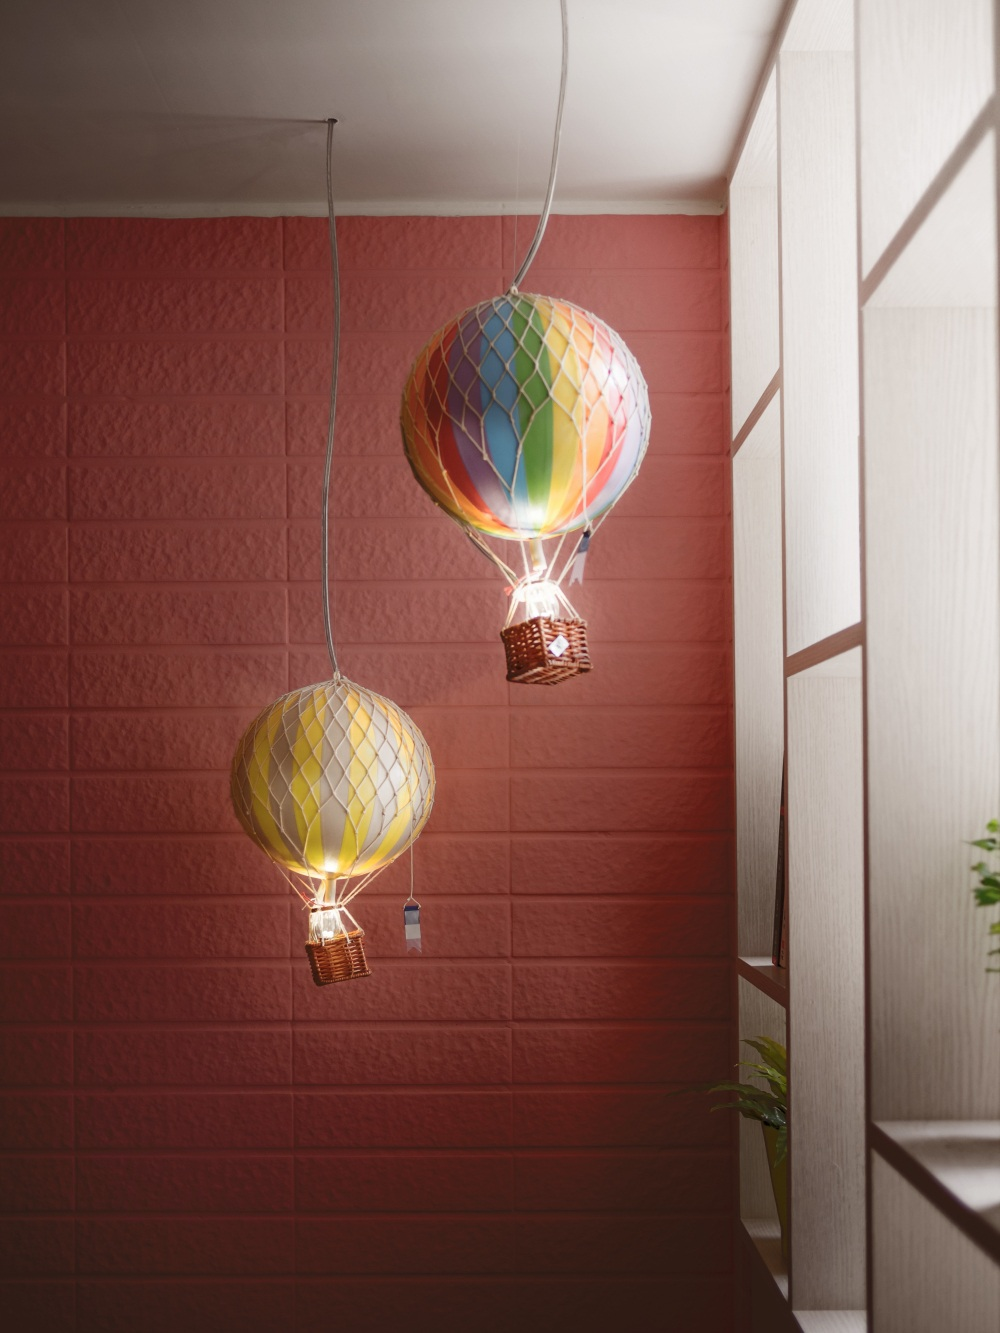 Hot Air Balloon Lights Interior Design Ideas